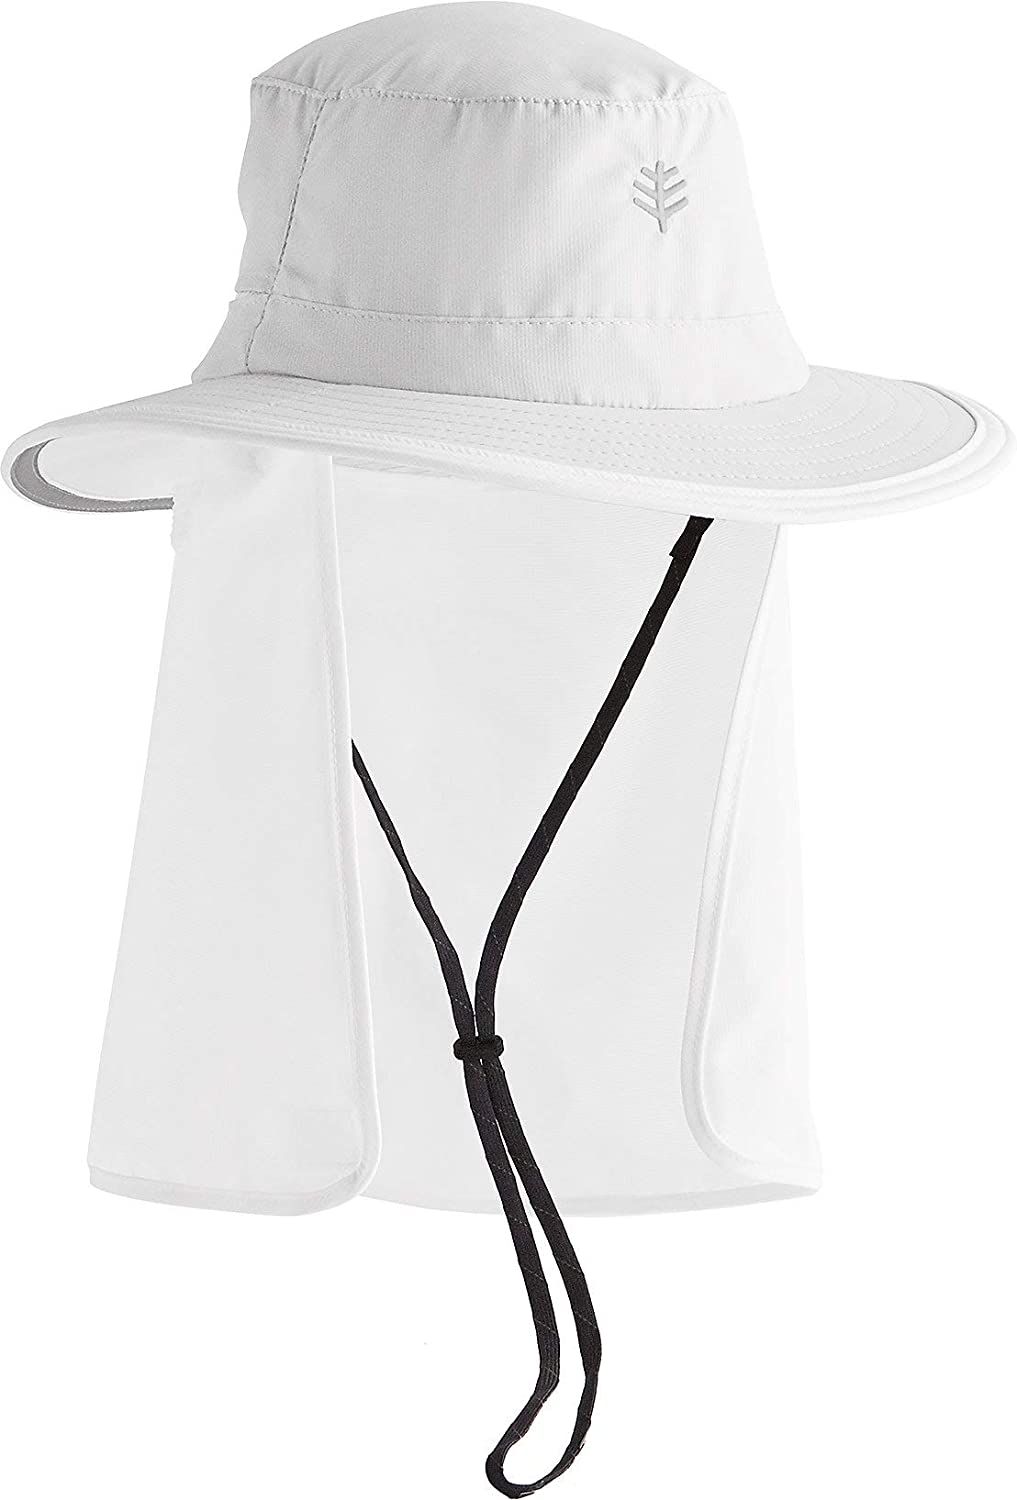 72cd90ecf Coolibar UPF 50+ Women's Men's Convertible Boating Hat - Sun Protective